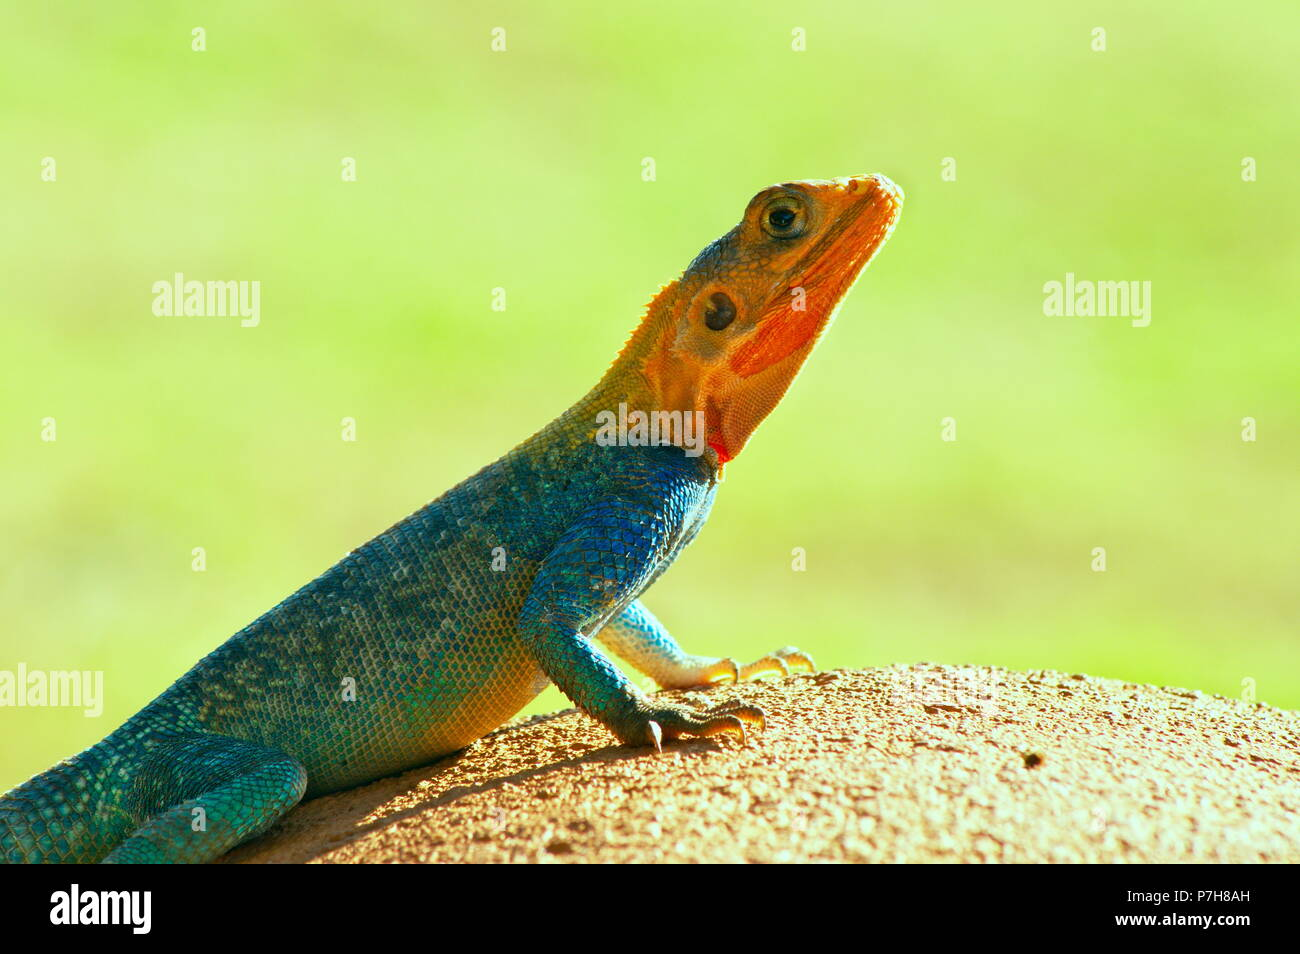 Beautiful Agama Red and blue lizard, isolated with green background on a sunny day , photo taken from Baringo lake shore, kenya, Africa Stock Photo